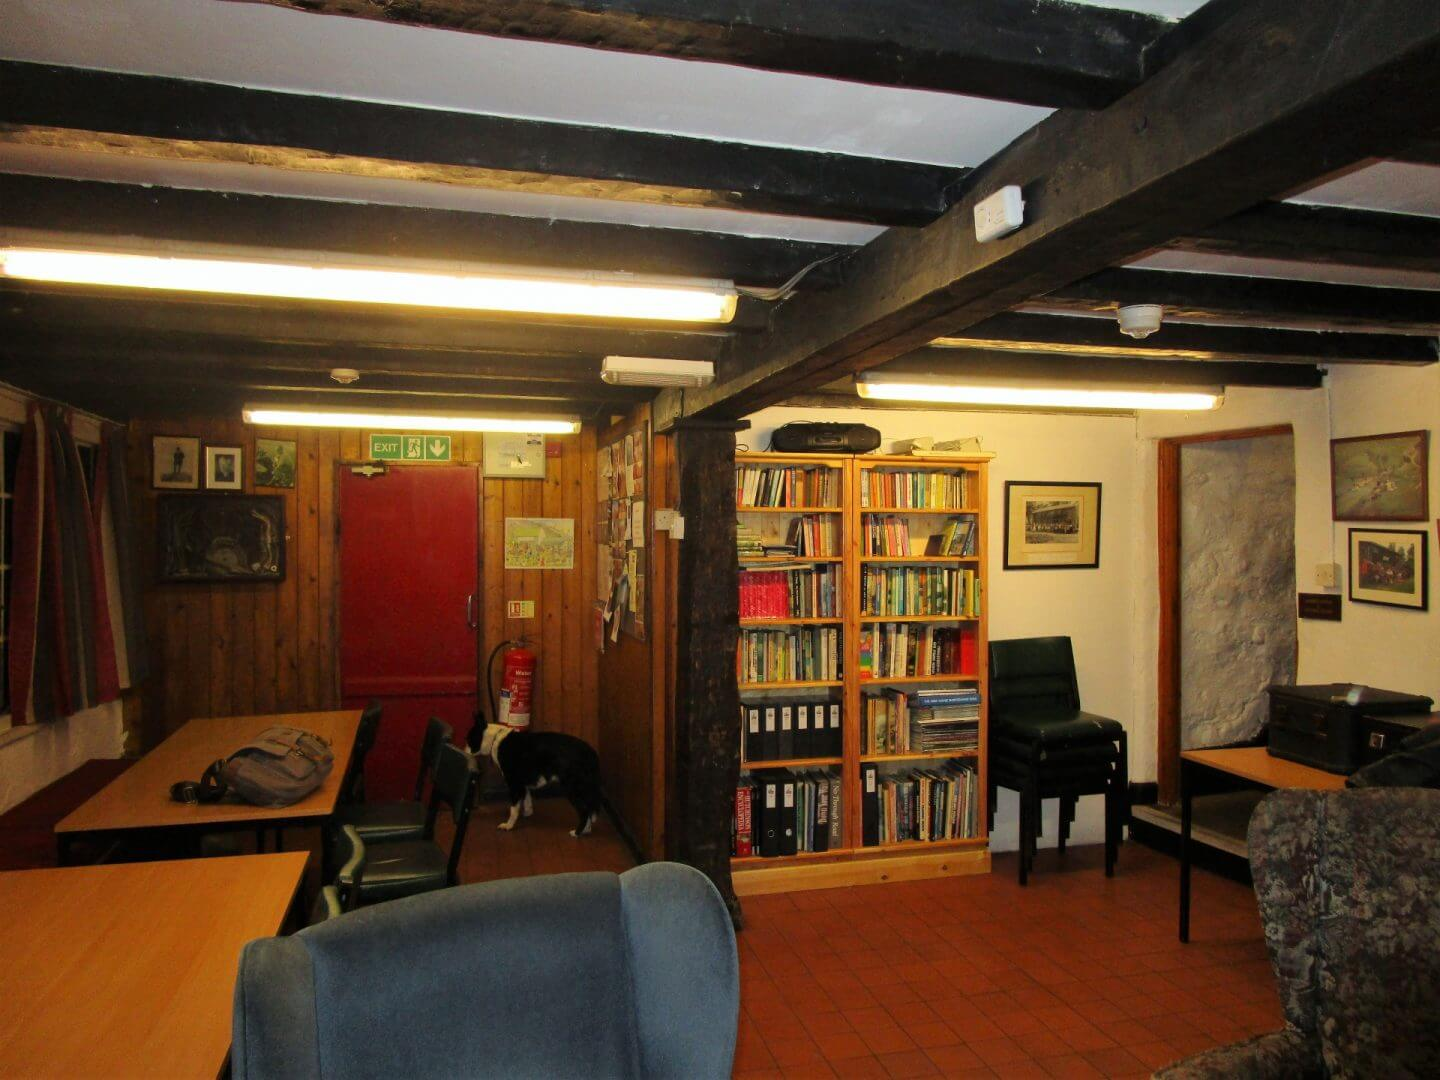 High House group accommodation libraray